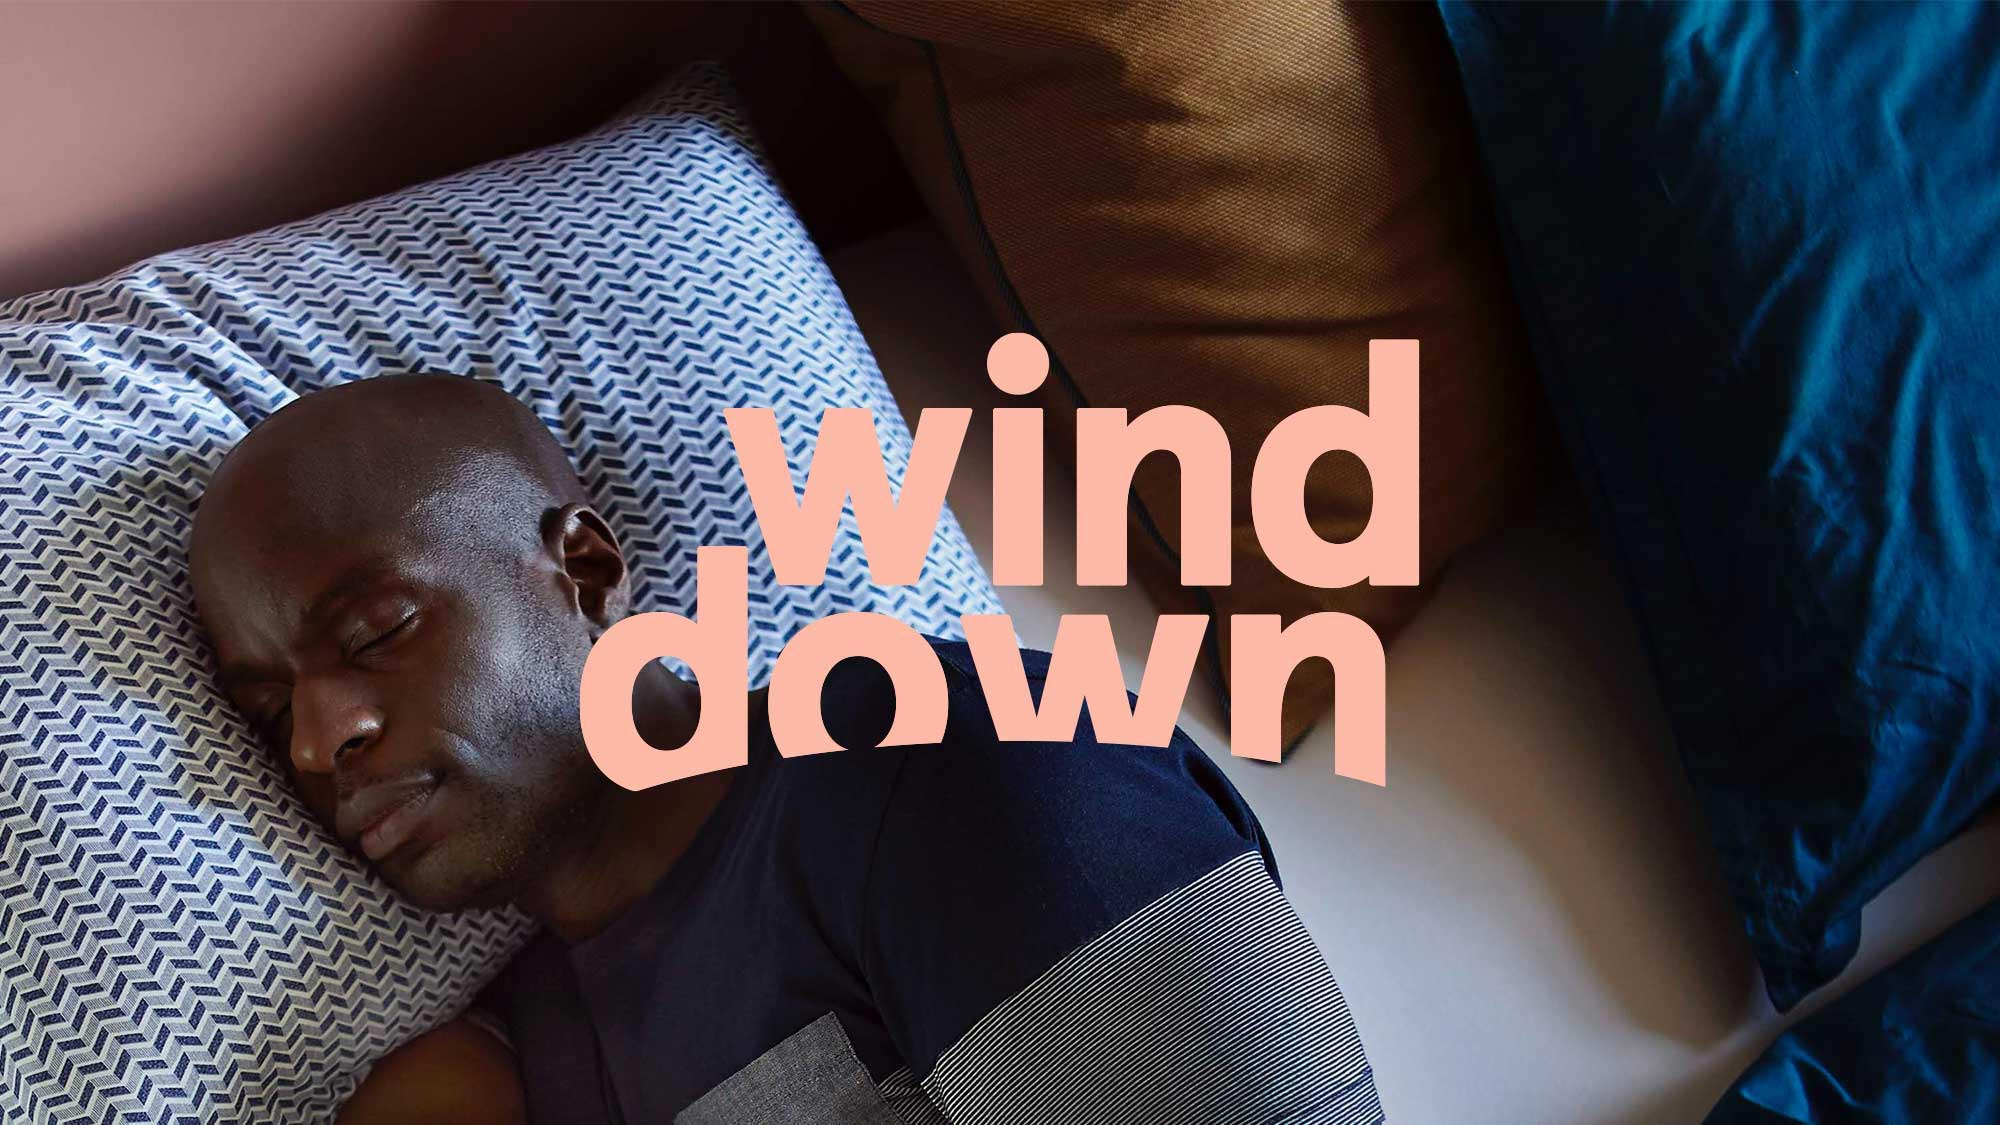 Wind Down Sleep App